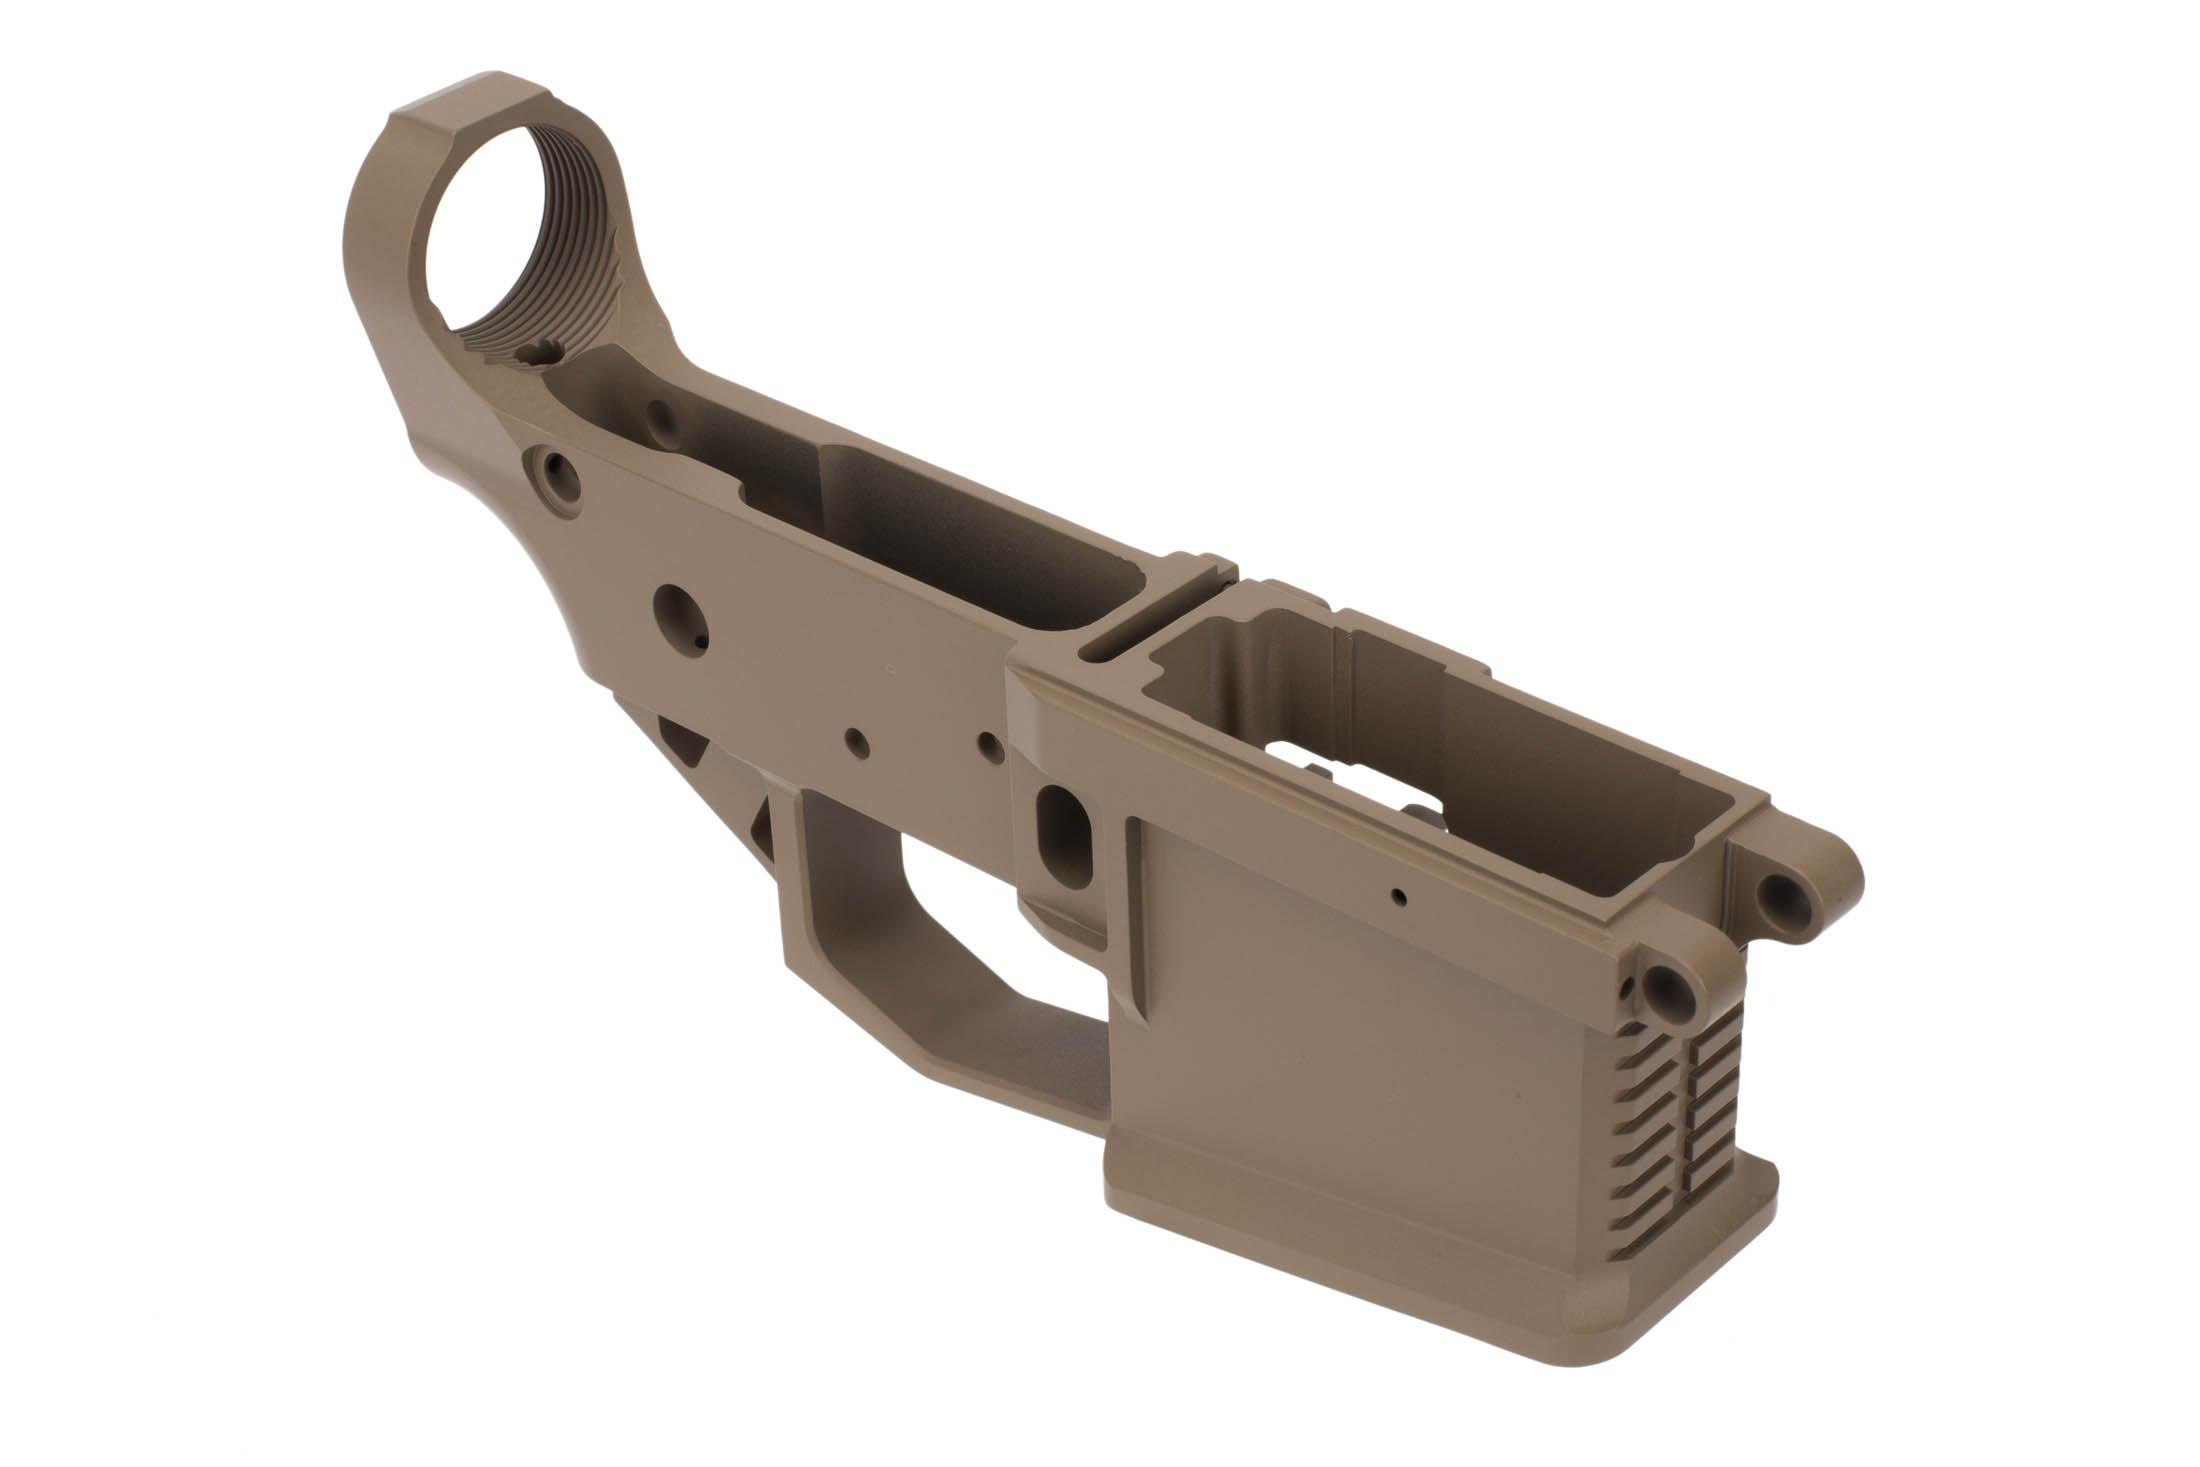 Rise Armament STRIKER billet AR-15 lower receiver in Flat Dark Earth with beveled magazine well.